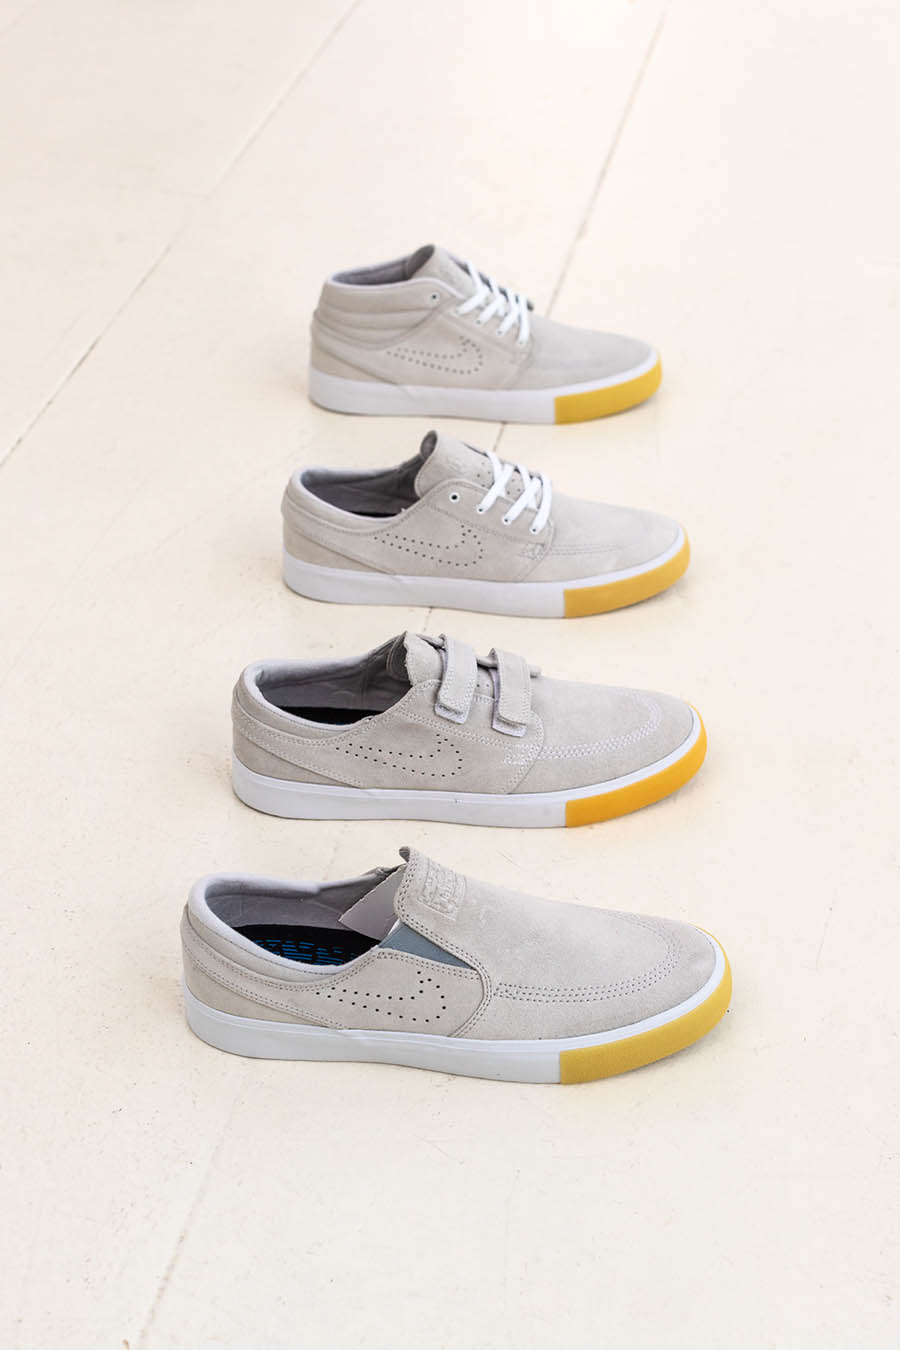 Nike - Janoski Remastered Collection